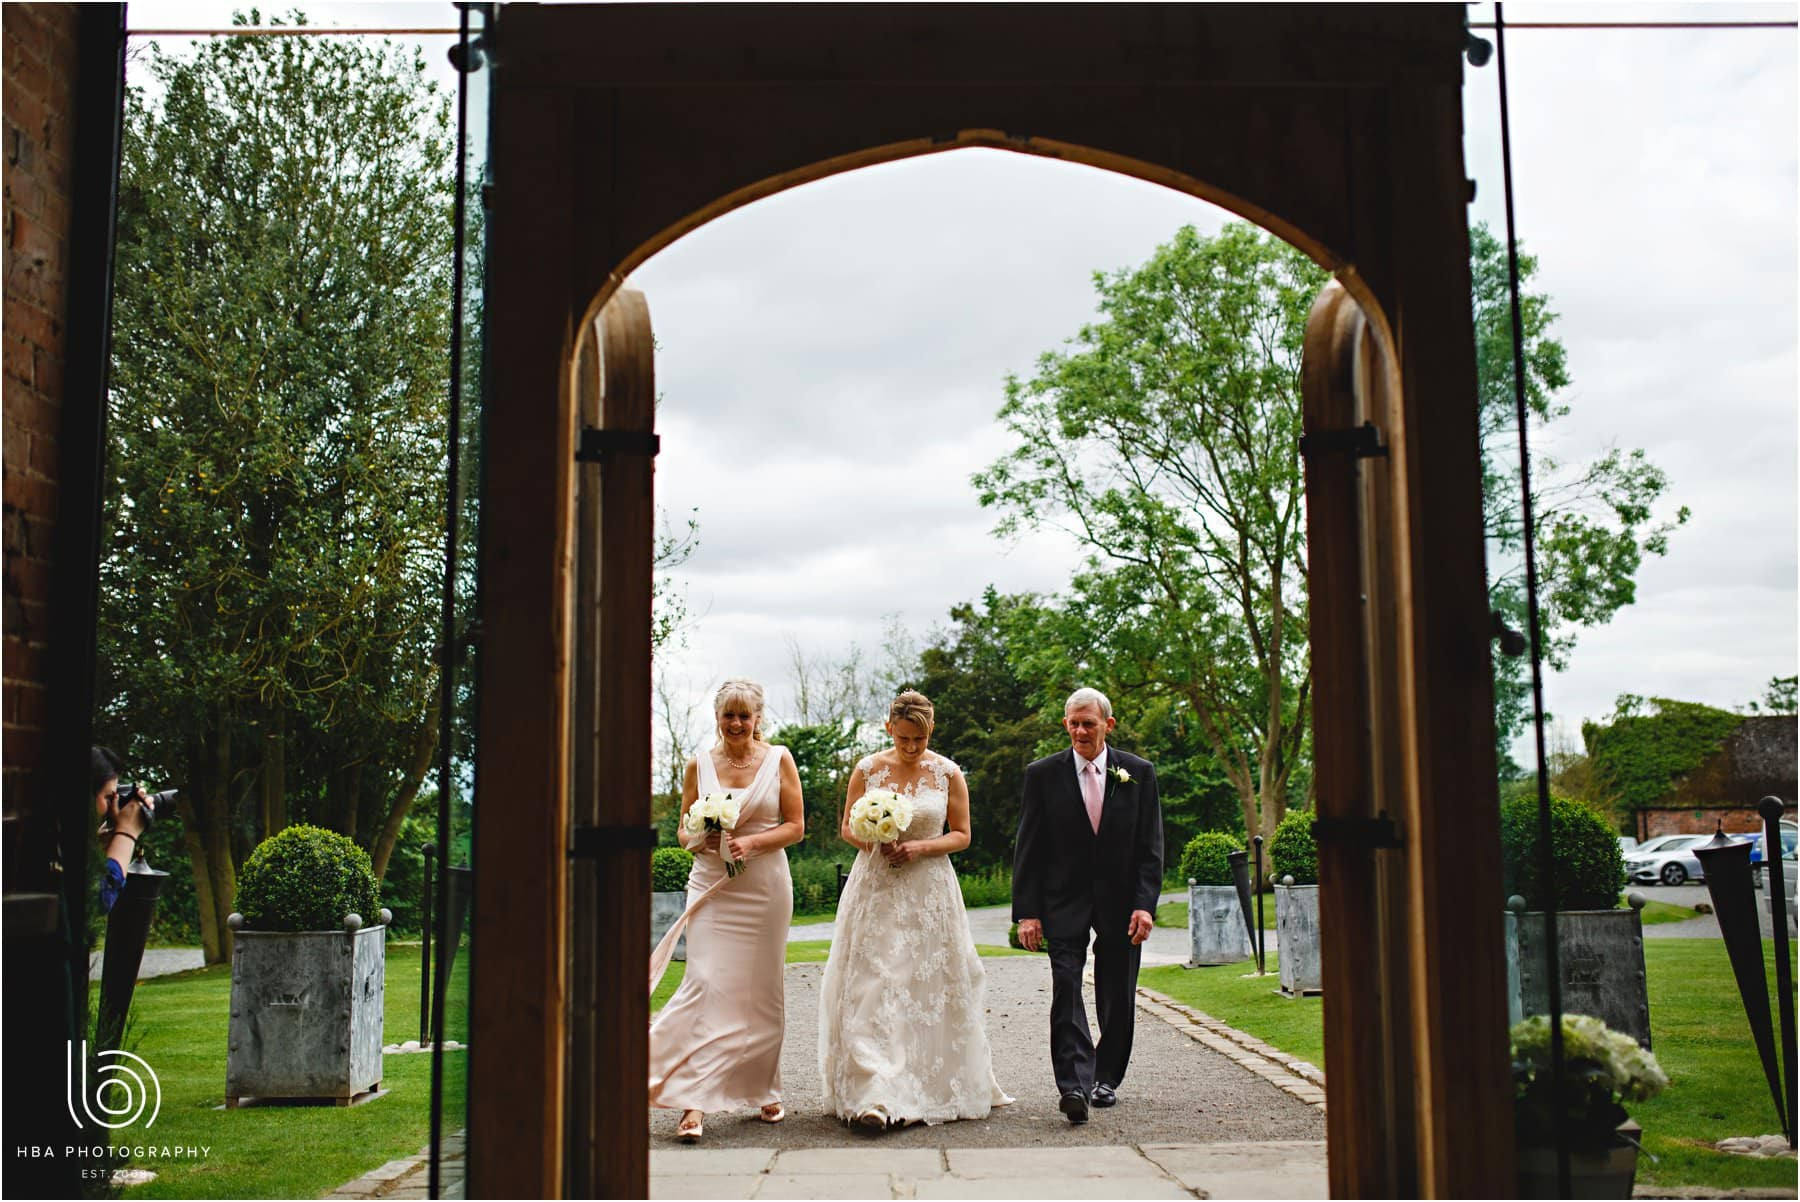 the bride and her dad arriving at shustoke